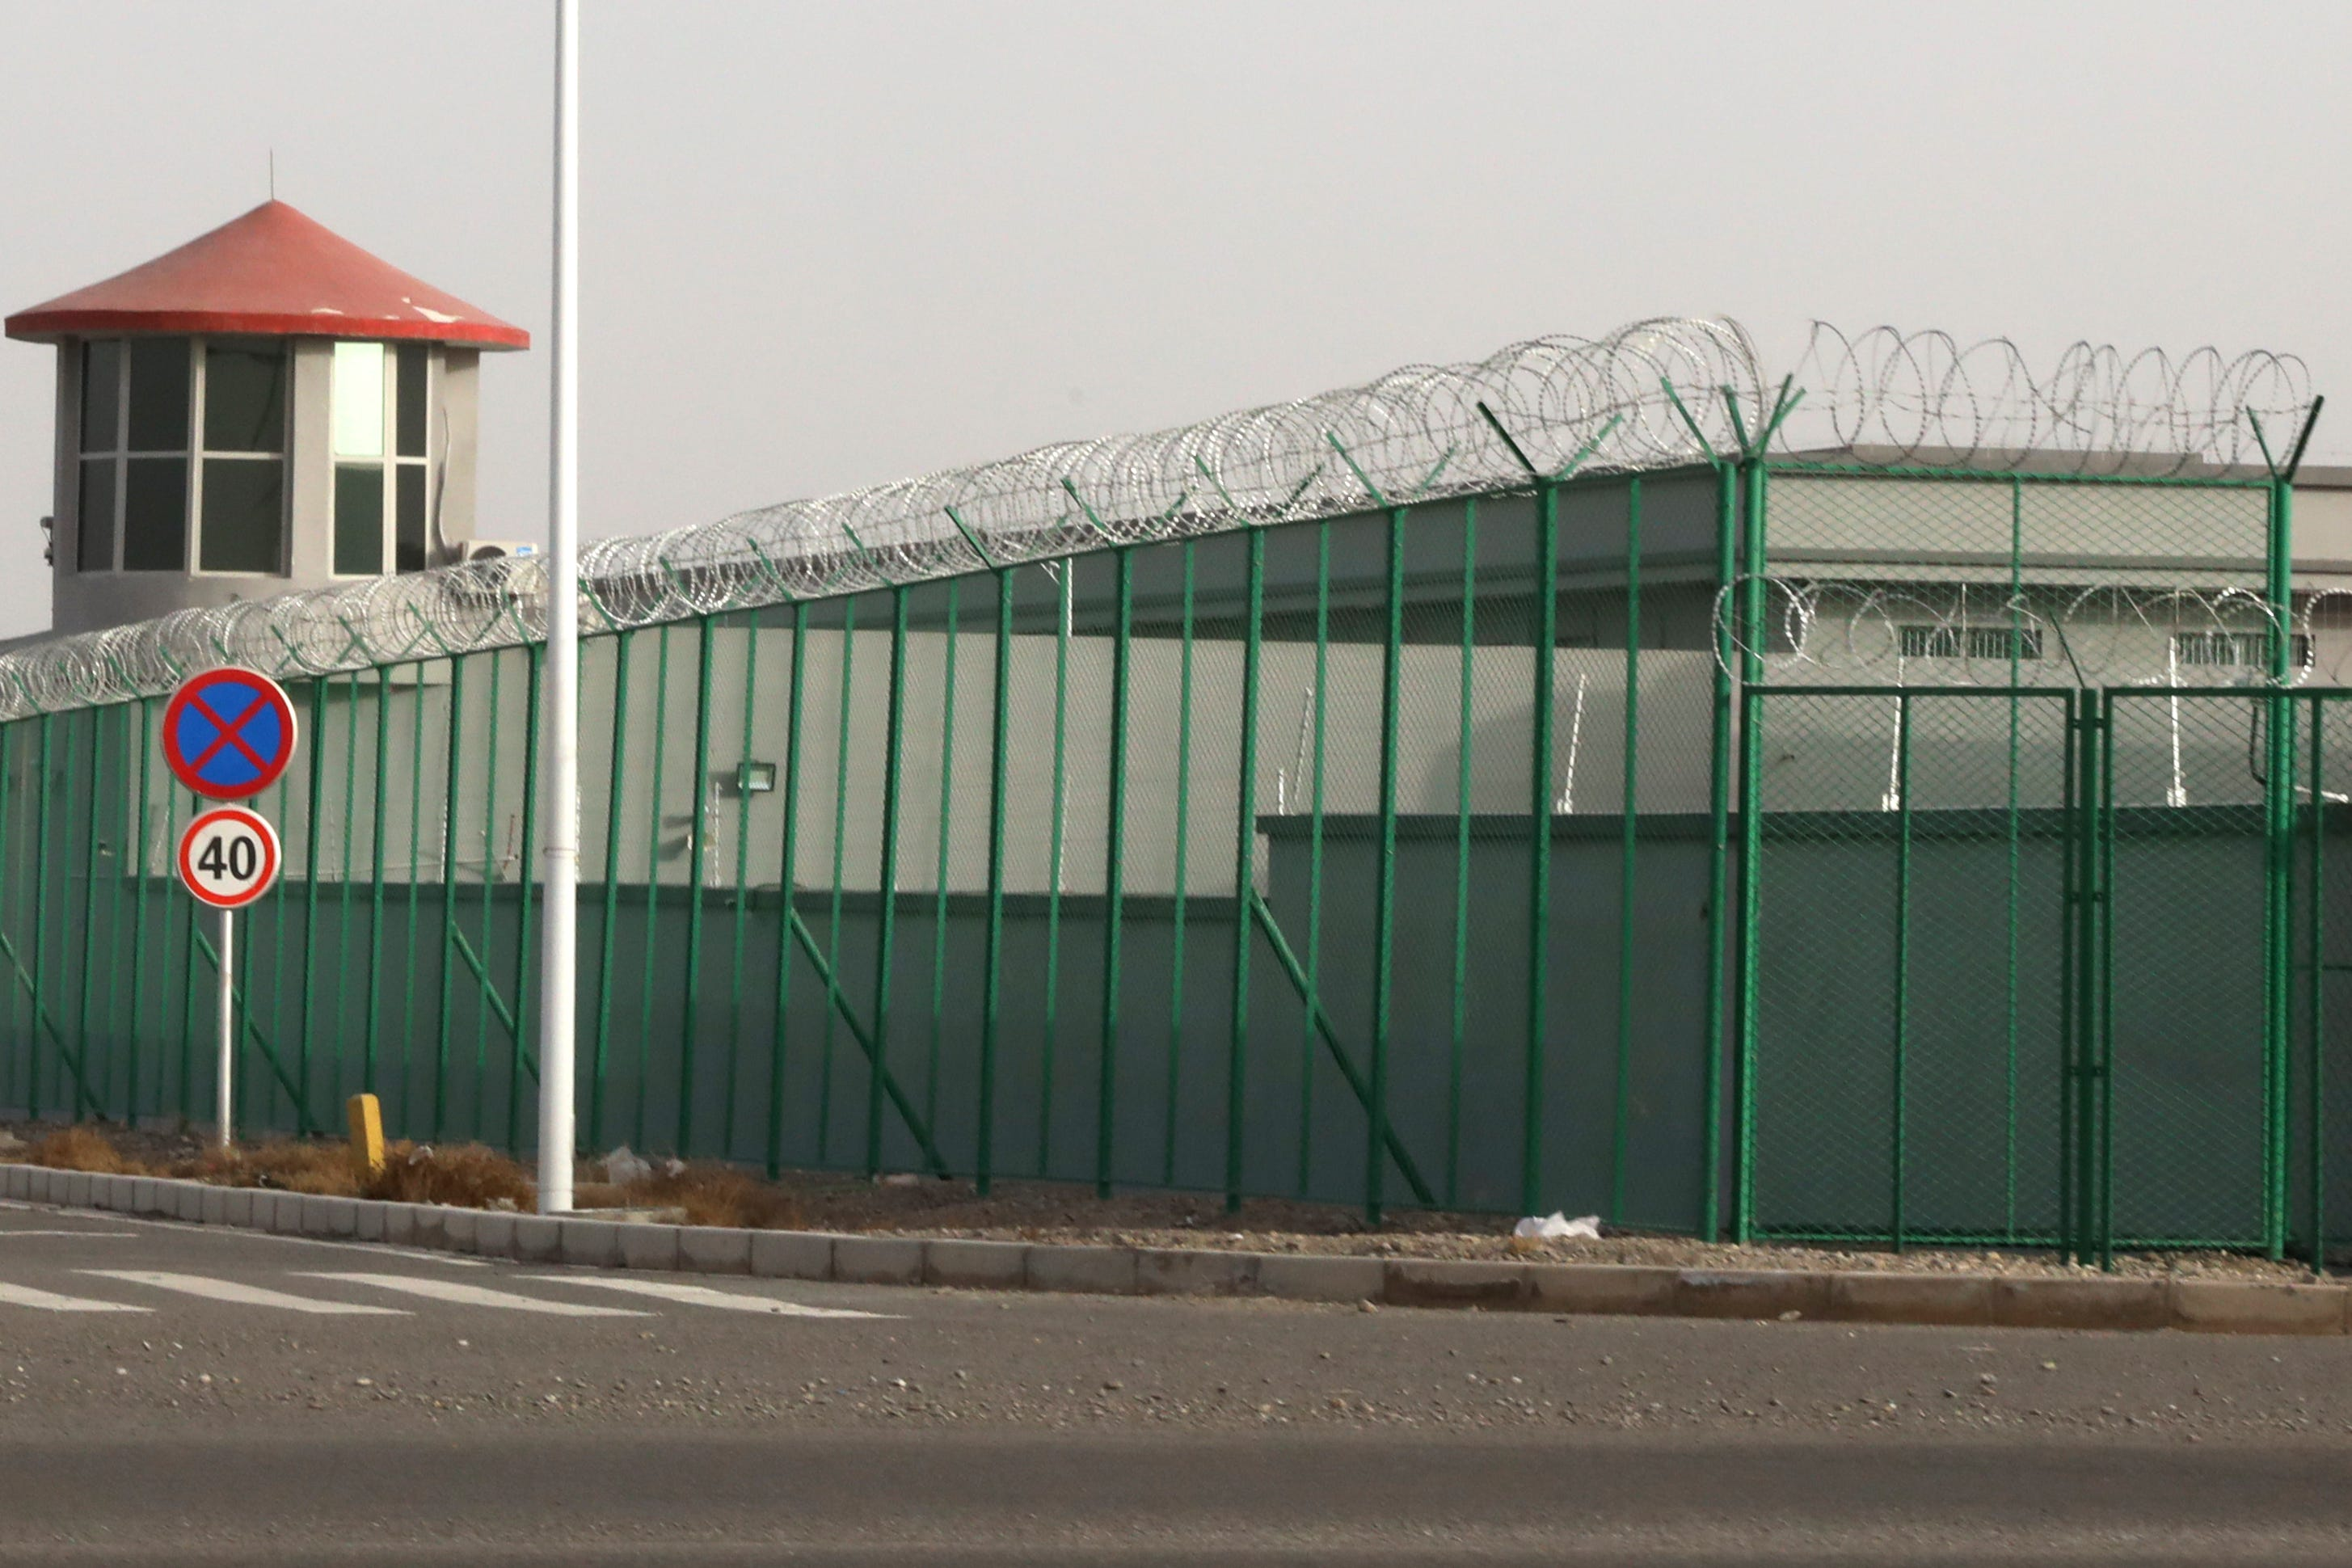 A guard tower and barbed wire fence surround a detention facility in the Kunshan Industrial Park in Artux in western China's Xinjiang region in 2018. A small core of international lawyers and activists are prodding leading Olympic sponsors to acknowledge China's widely reported human-rights abuses against Muslim Uyghurs, Tibetans and other minorities.